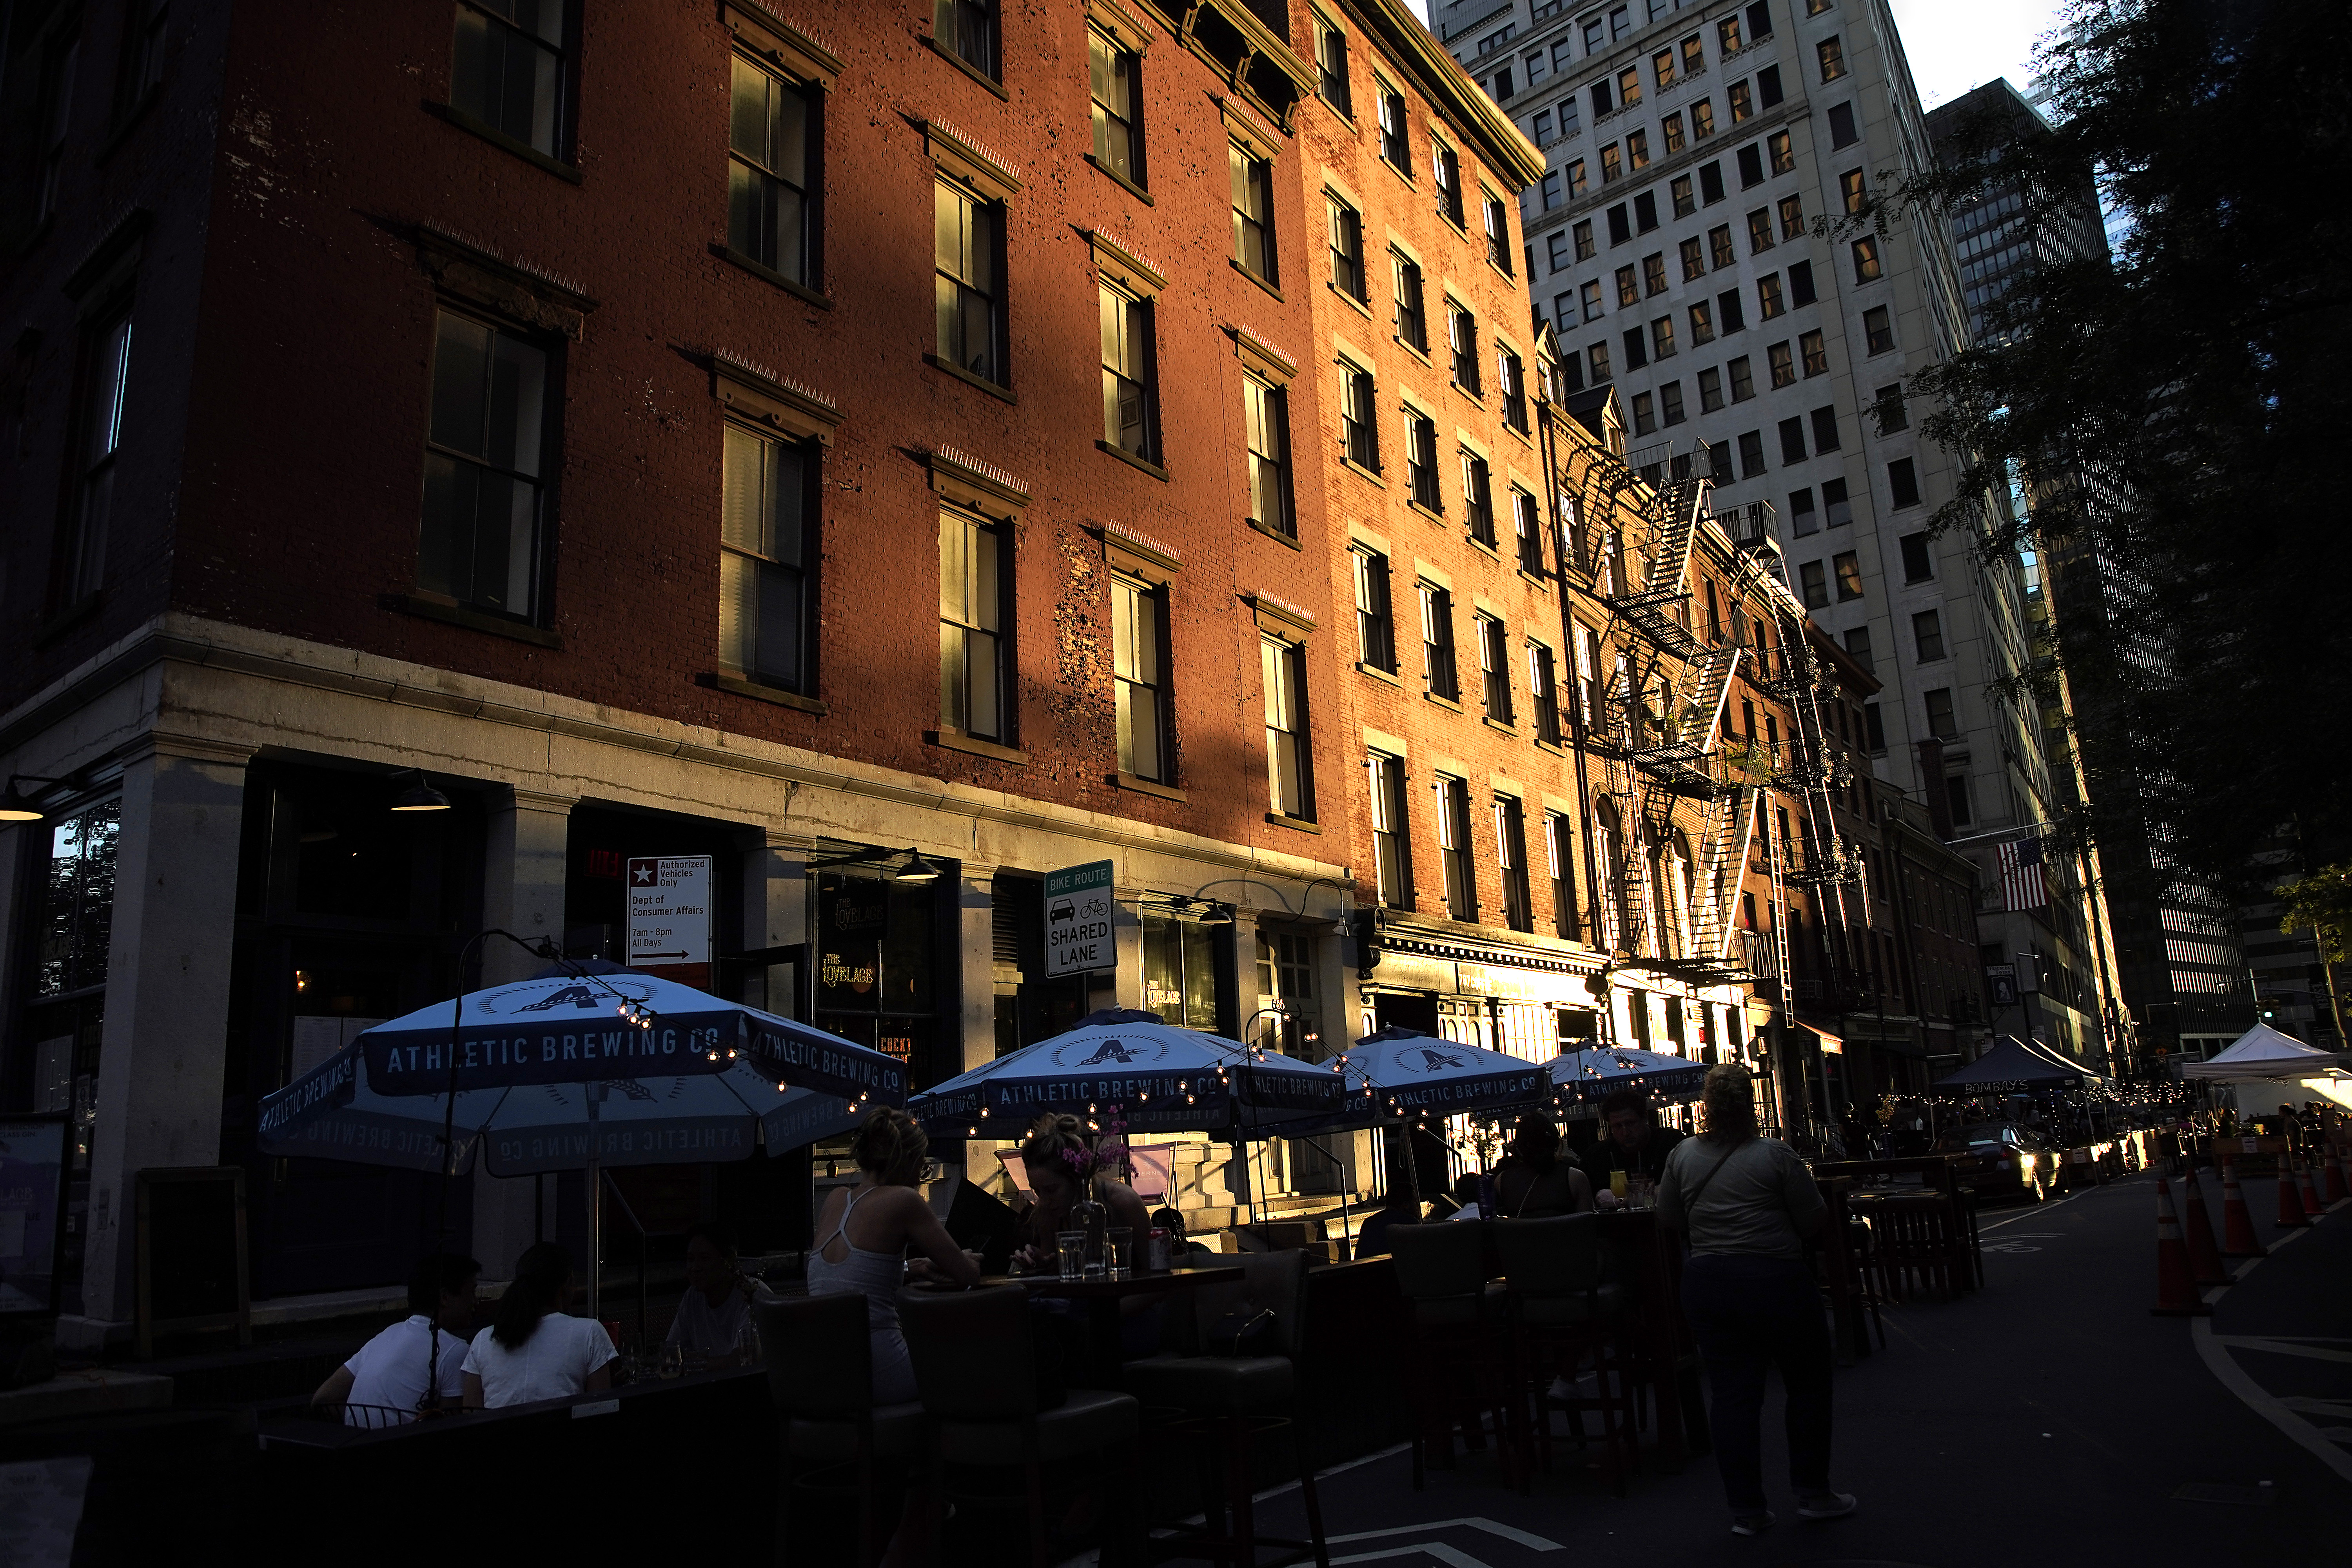 People dine at an outdoor restaurant located on the street in lower Manhattan.